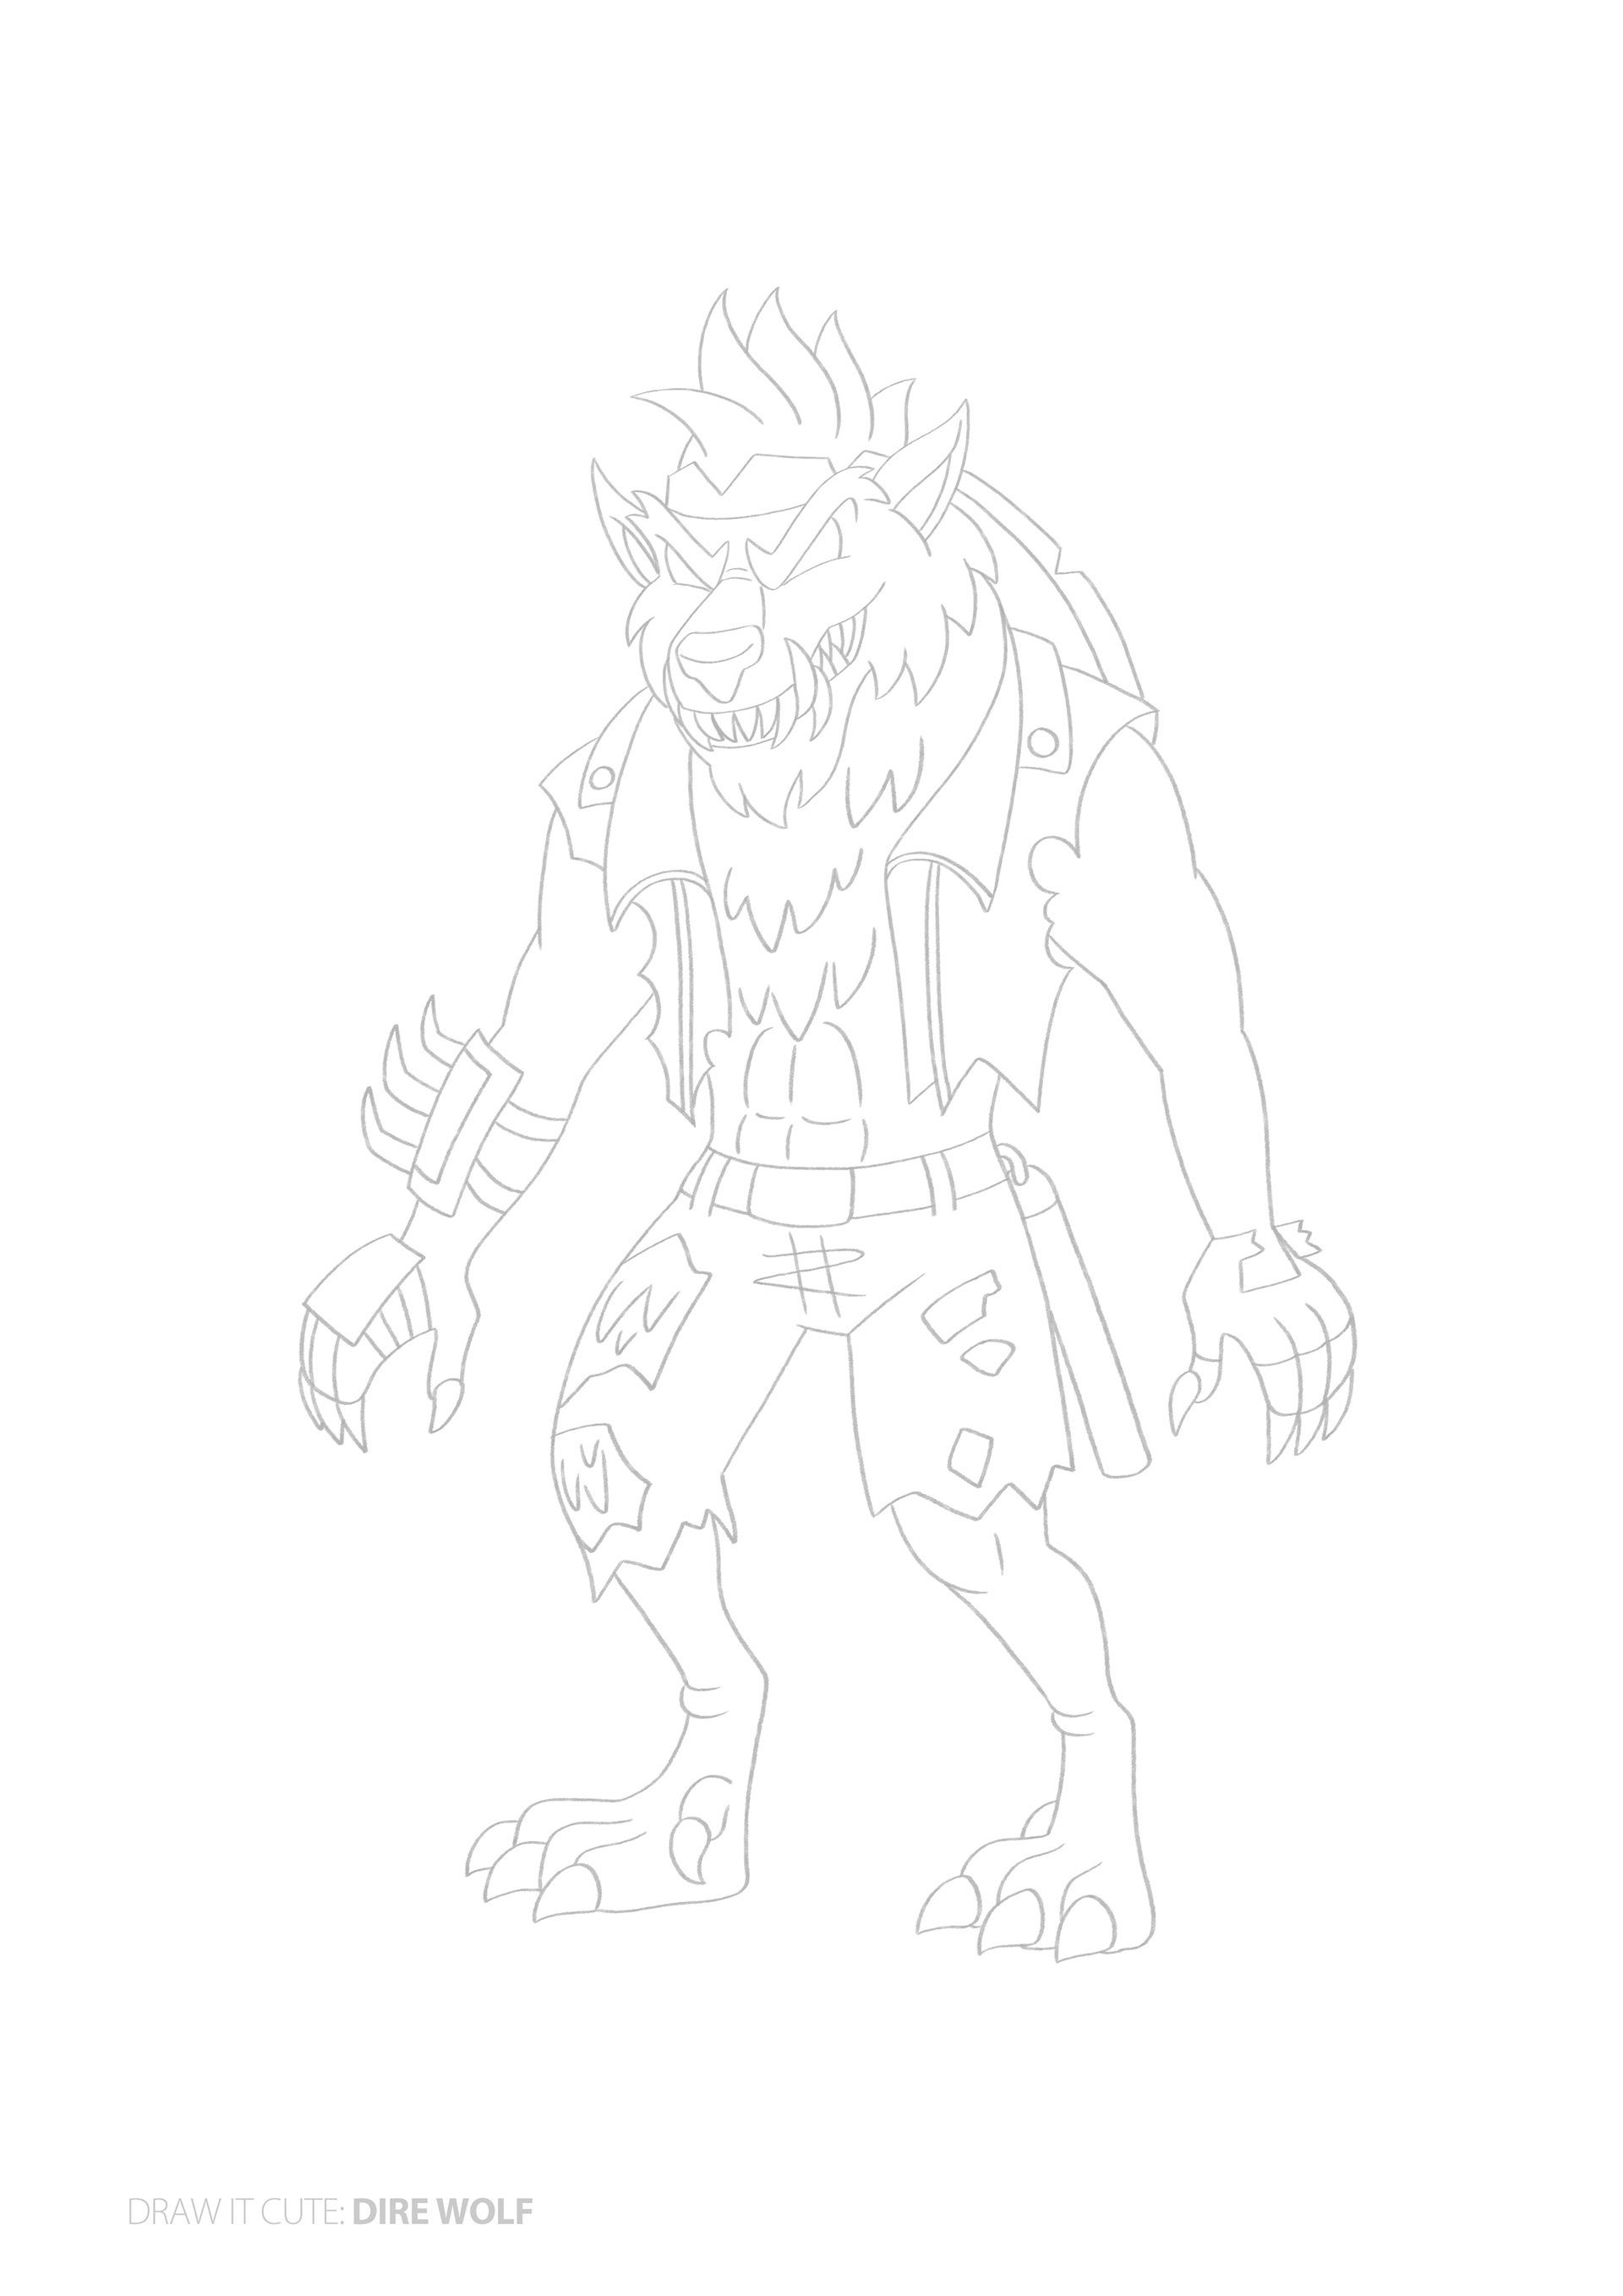 How To Draw Dire Wolf Easy Fortnite Character Skin On Behance Drawings Dire Wolf Skin Drawing